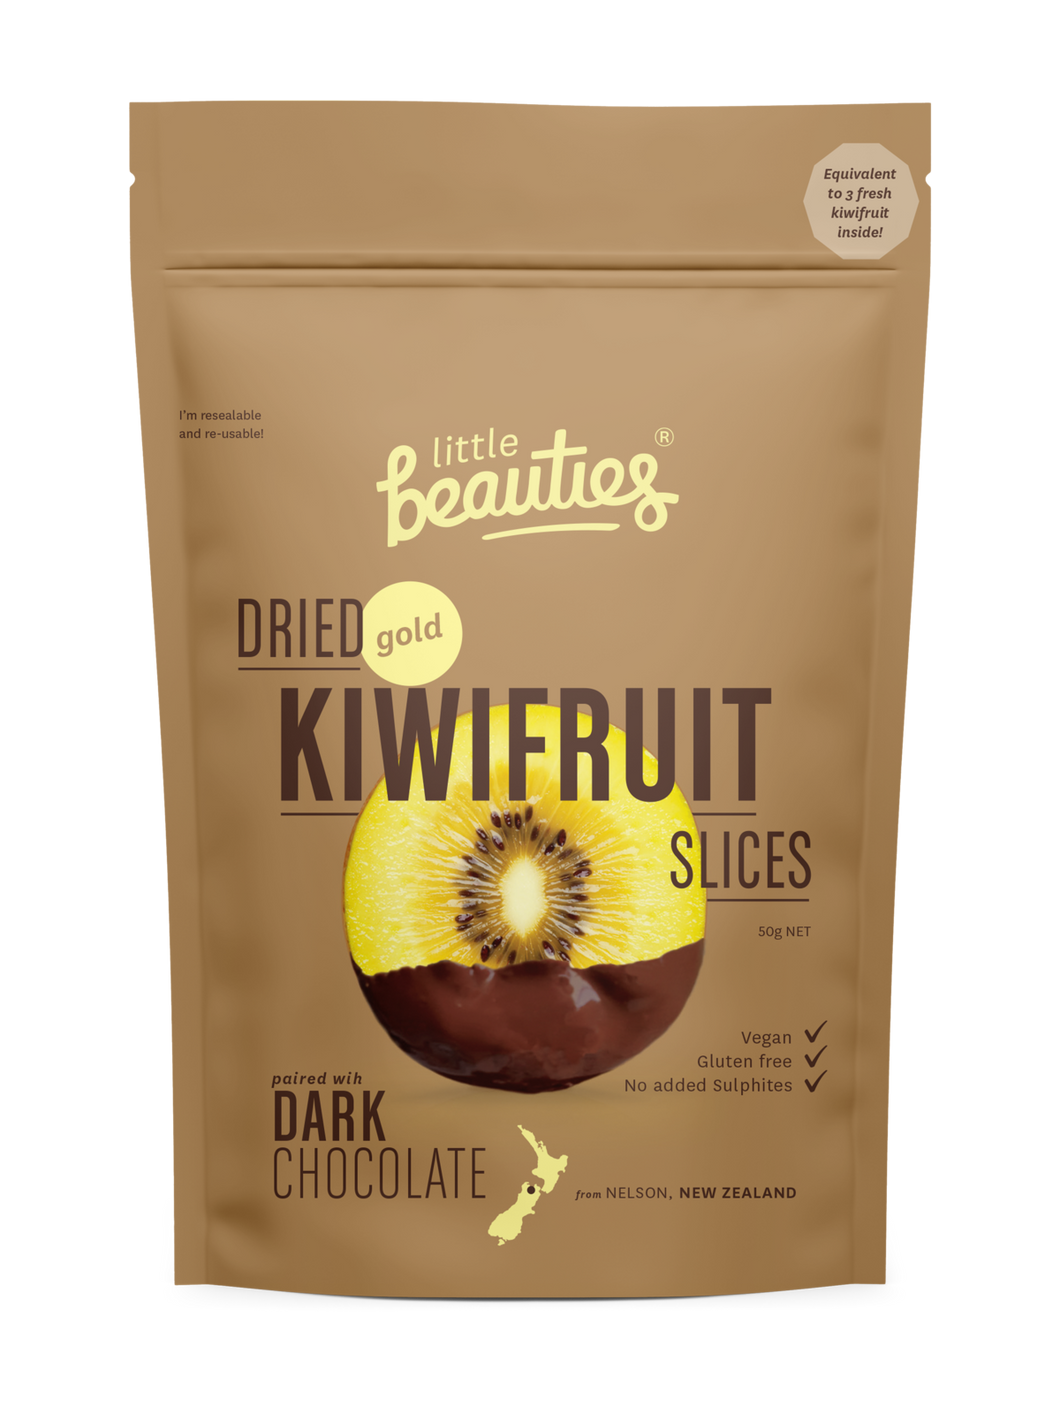 Gold Kiwifruit Slices, air-dried, paired with dark chocolate